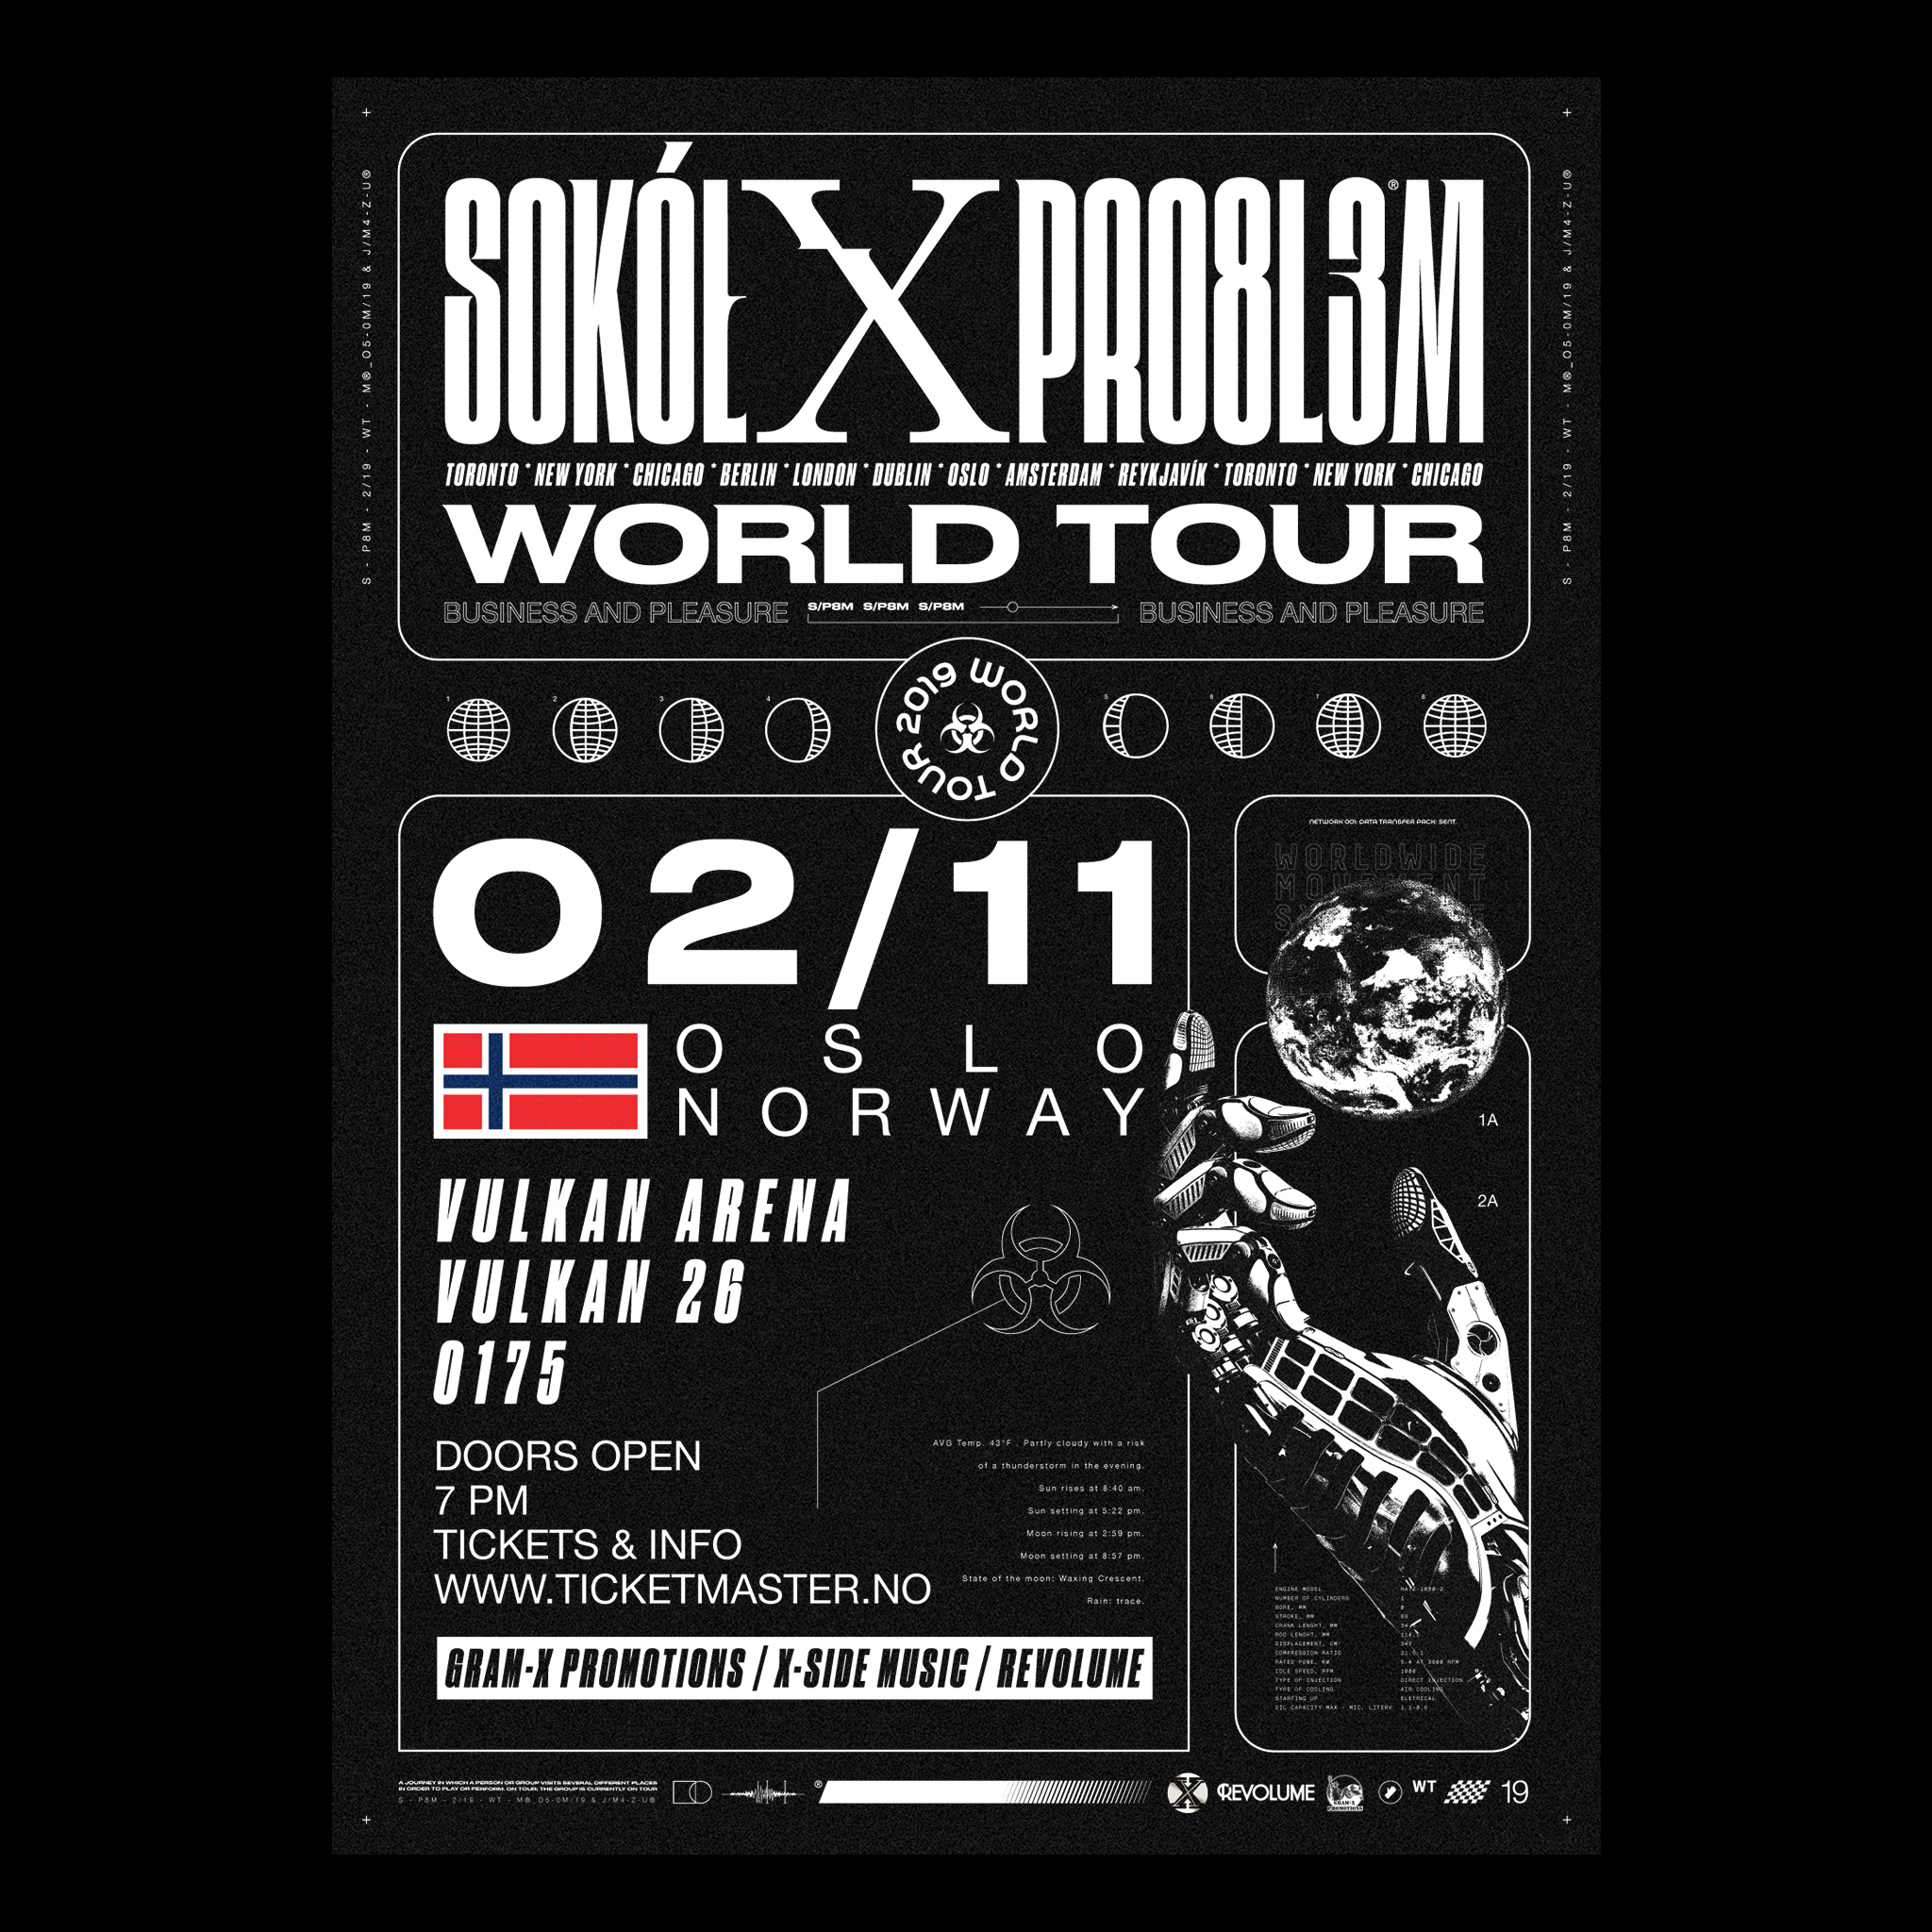 SOKOL / PRO8L3M / WORLD TOUR 2019